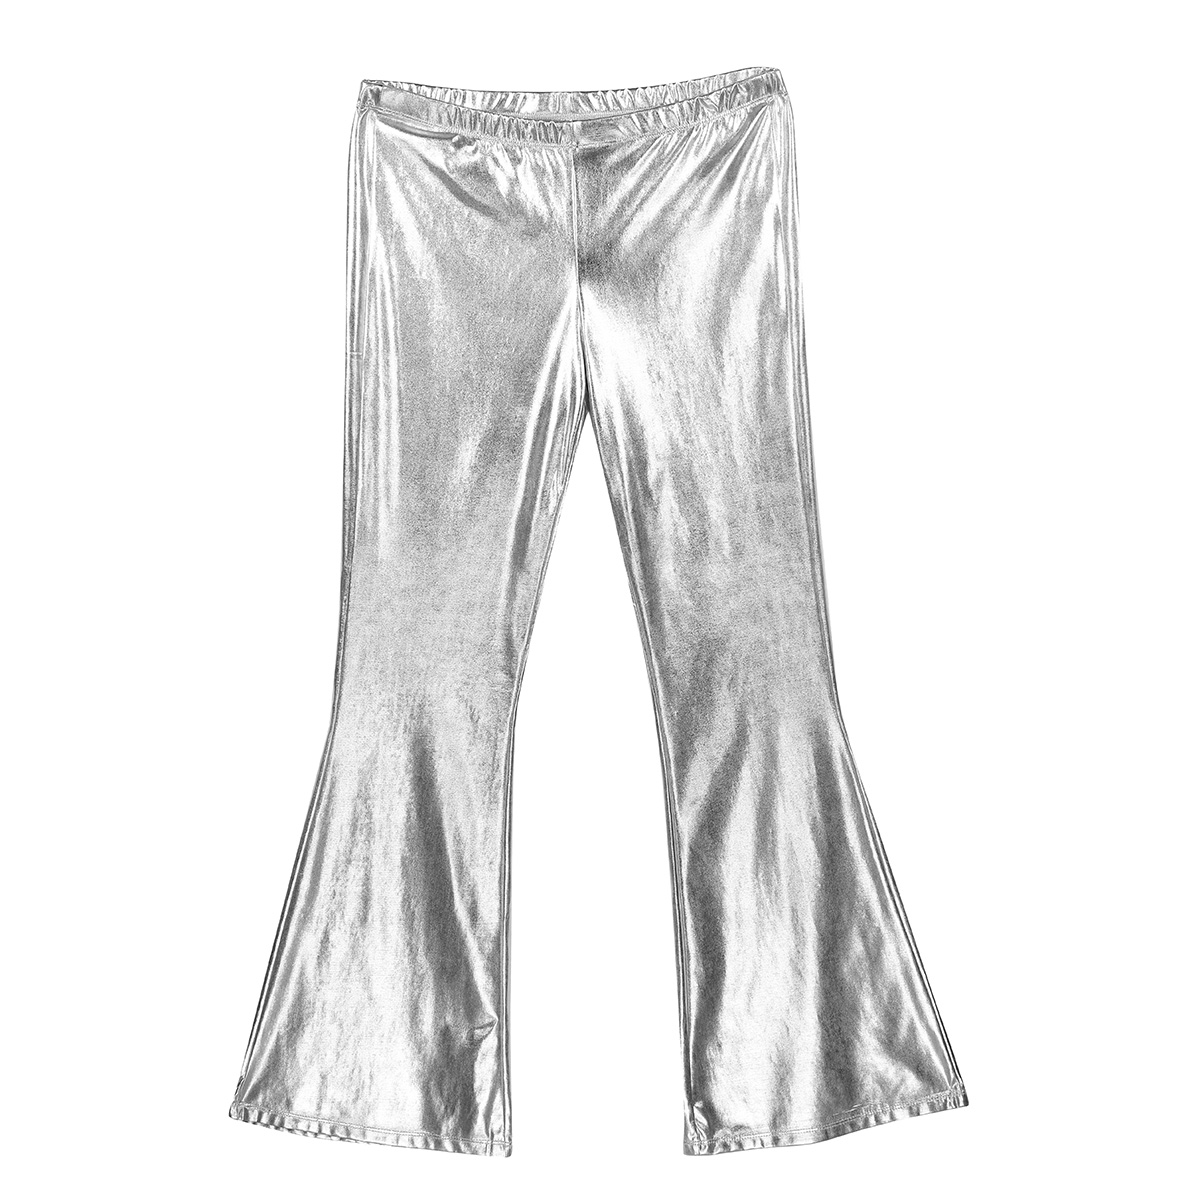 ChicTry Adults Mens Shiny Metallic Disco Pants with Bell Bottom Flared Long Pants Dude Costume Trousers for 70's Theme Parties 49